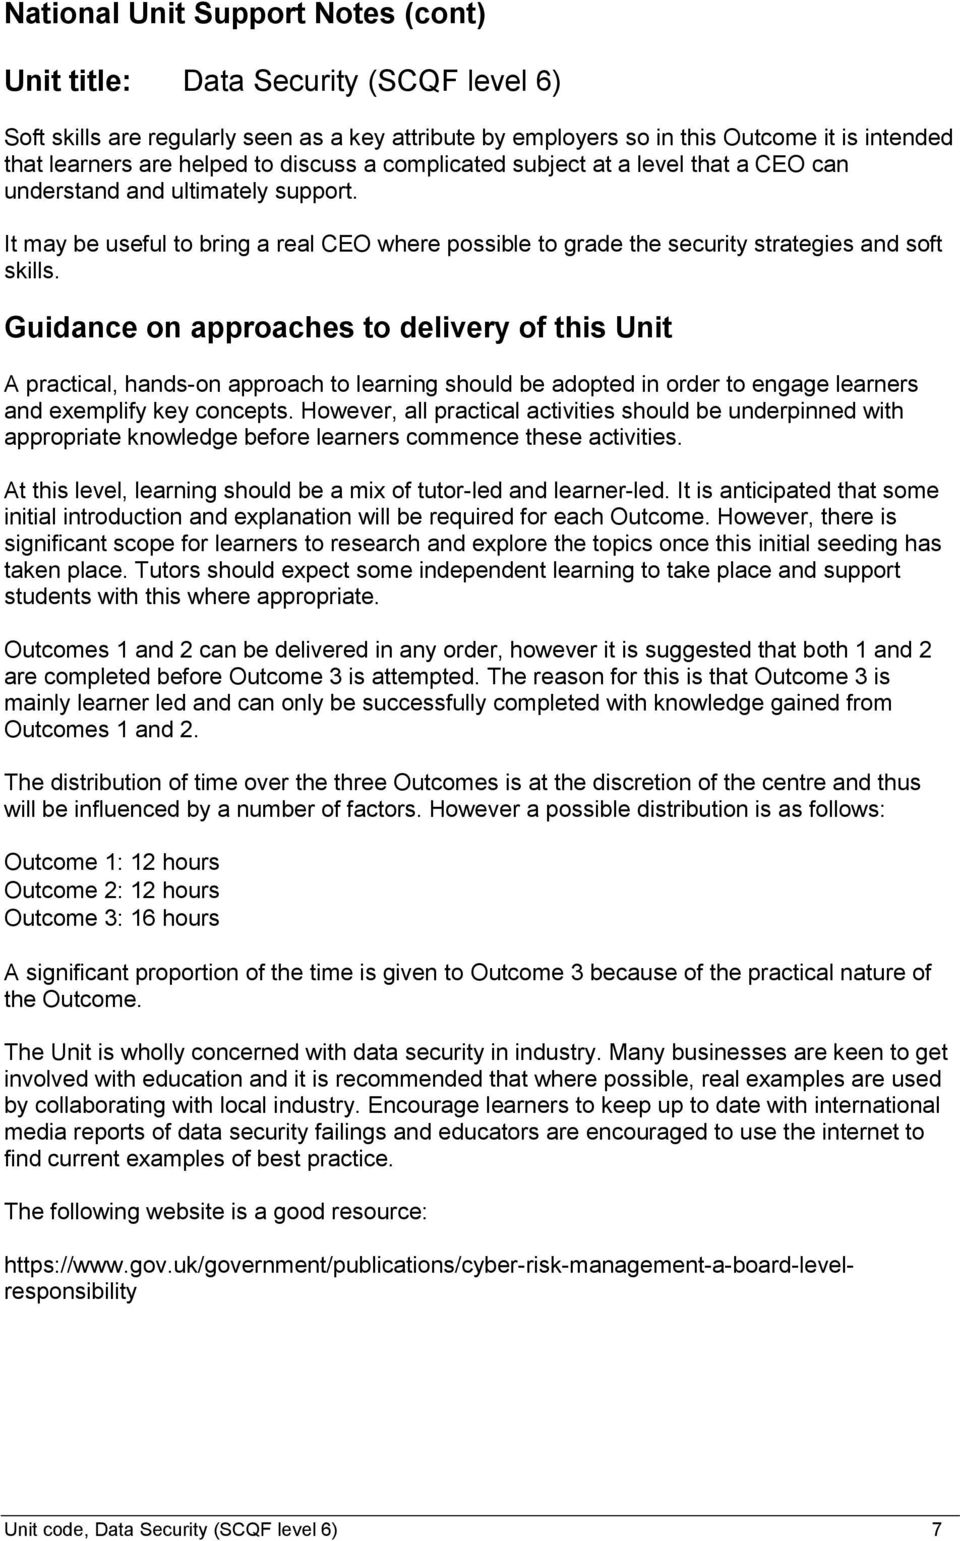 Guidance on approaches to delivery of this Unit A practical, hands-on approach to learning should be adopted in order to engage learners and exemplify key concepts.